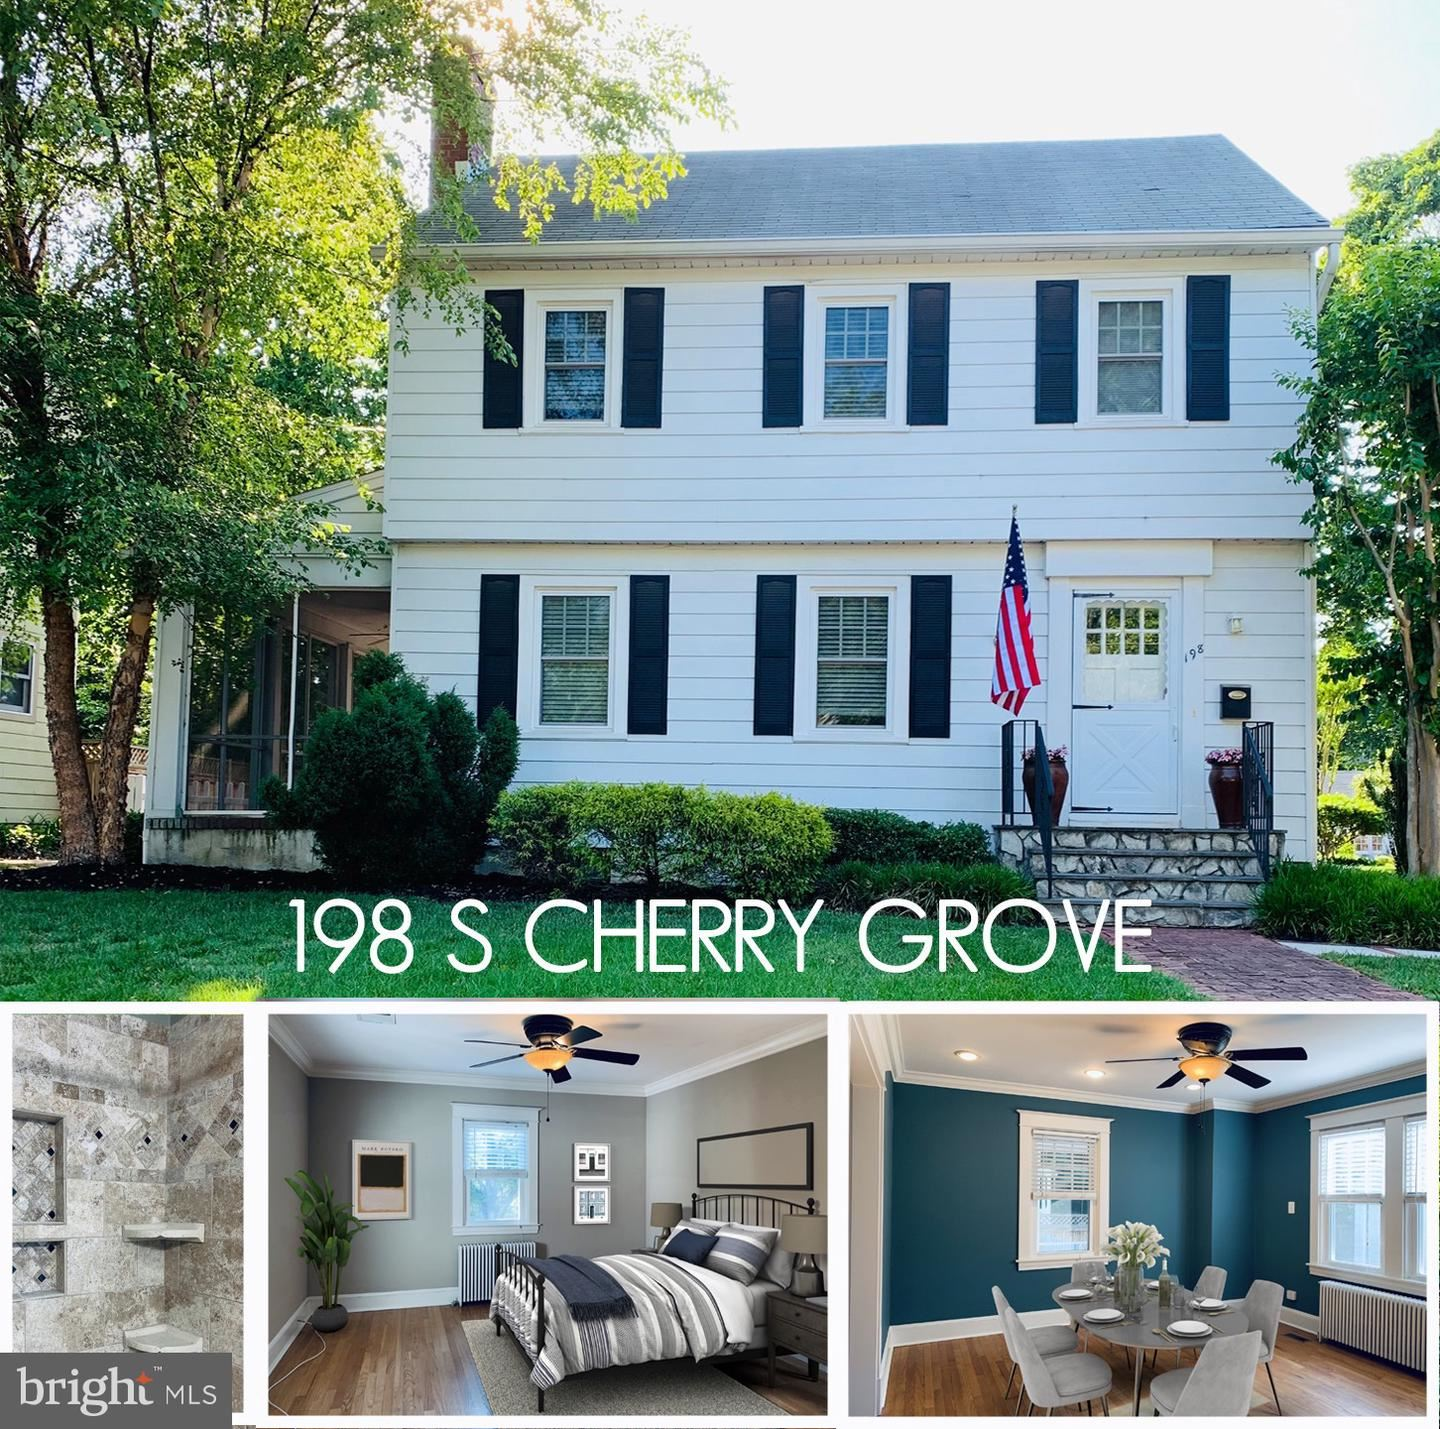 198 S CHERRY GROVE AVE, Annapolis, MD 21401 - MLS#: MDAA470242